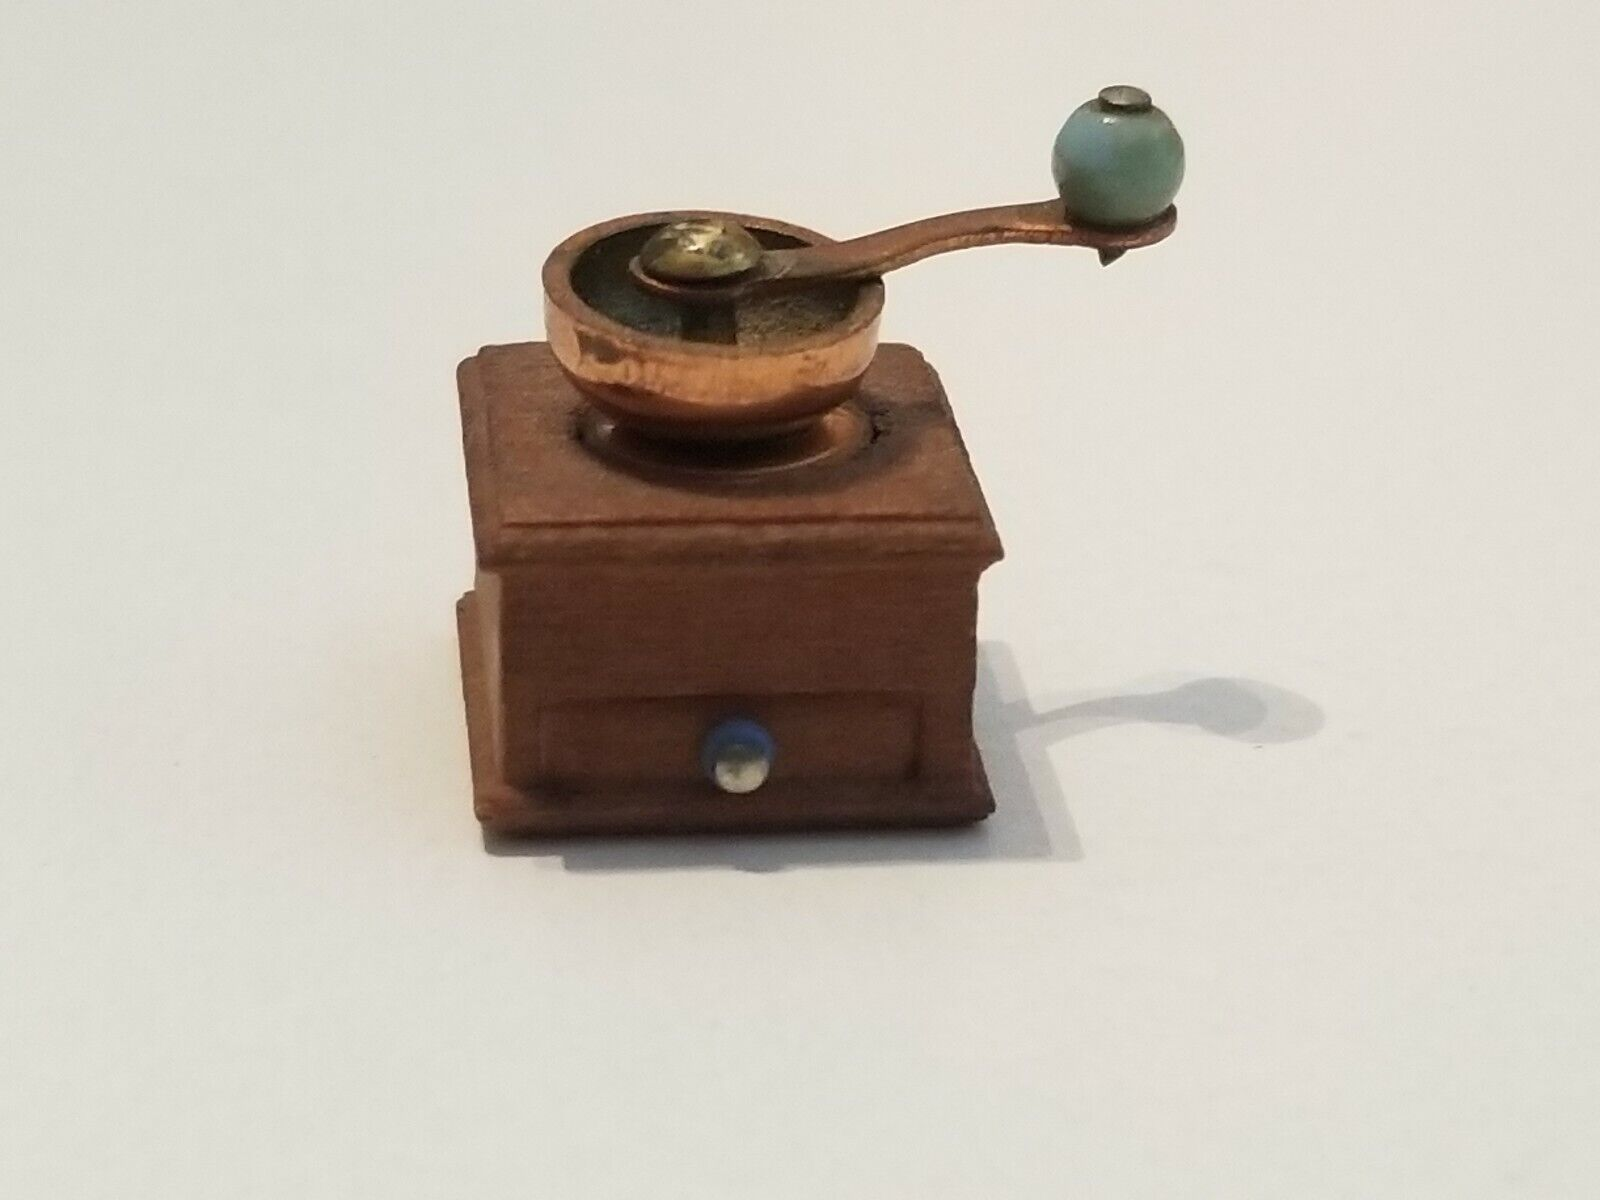 VINTAGE DOLLHOUSE WOOD COPPER GLASS MINIATURE COFFEE GRINDER MOVABLE PARTS